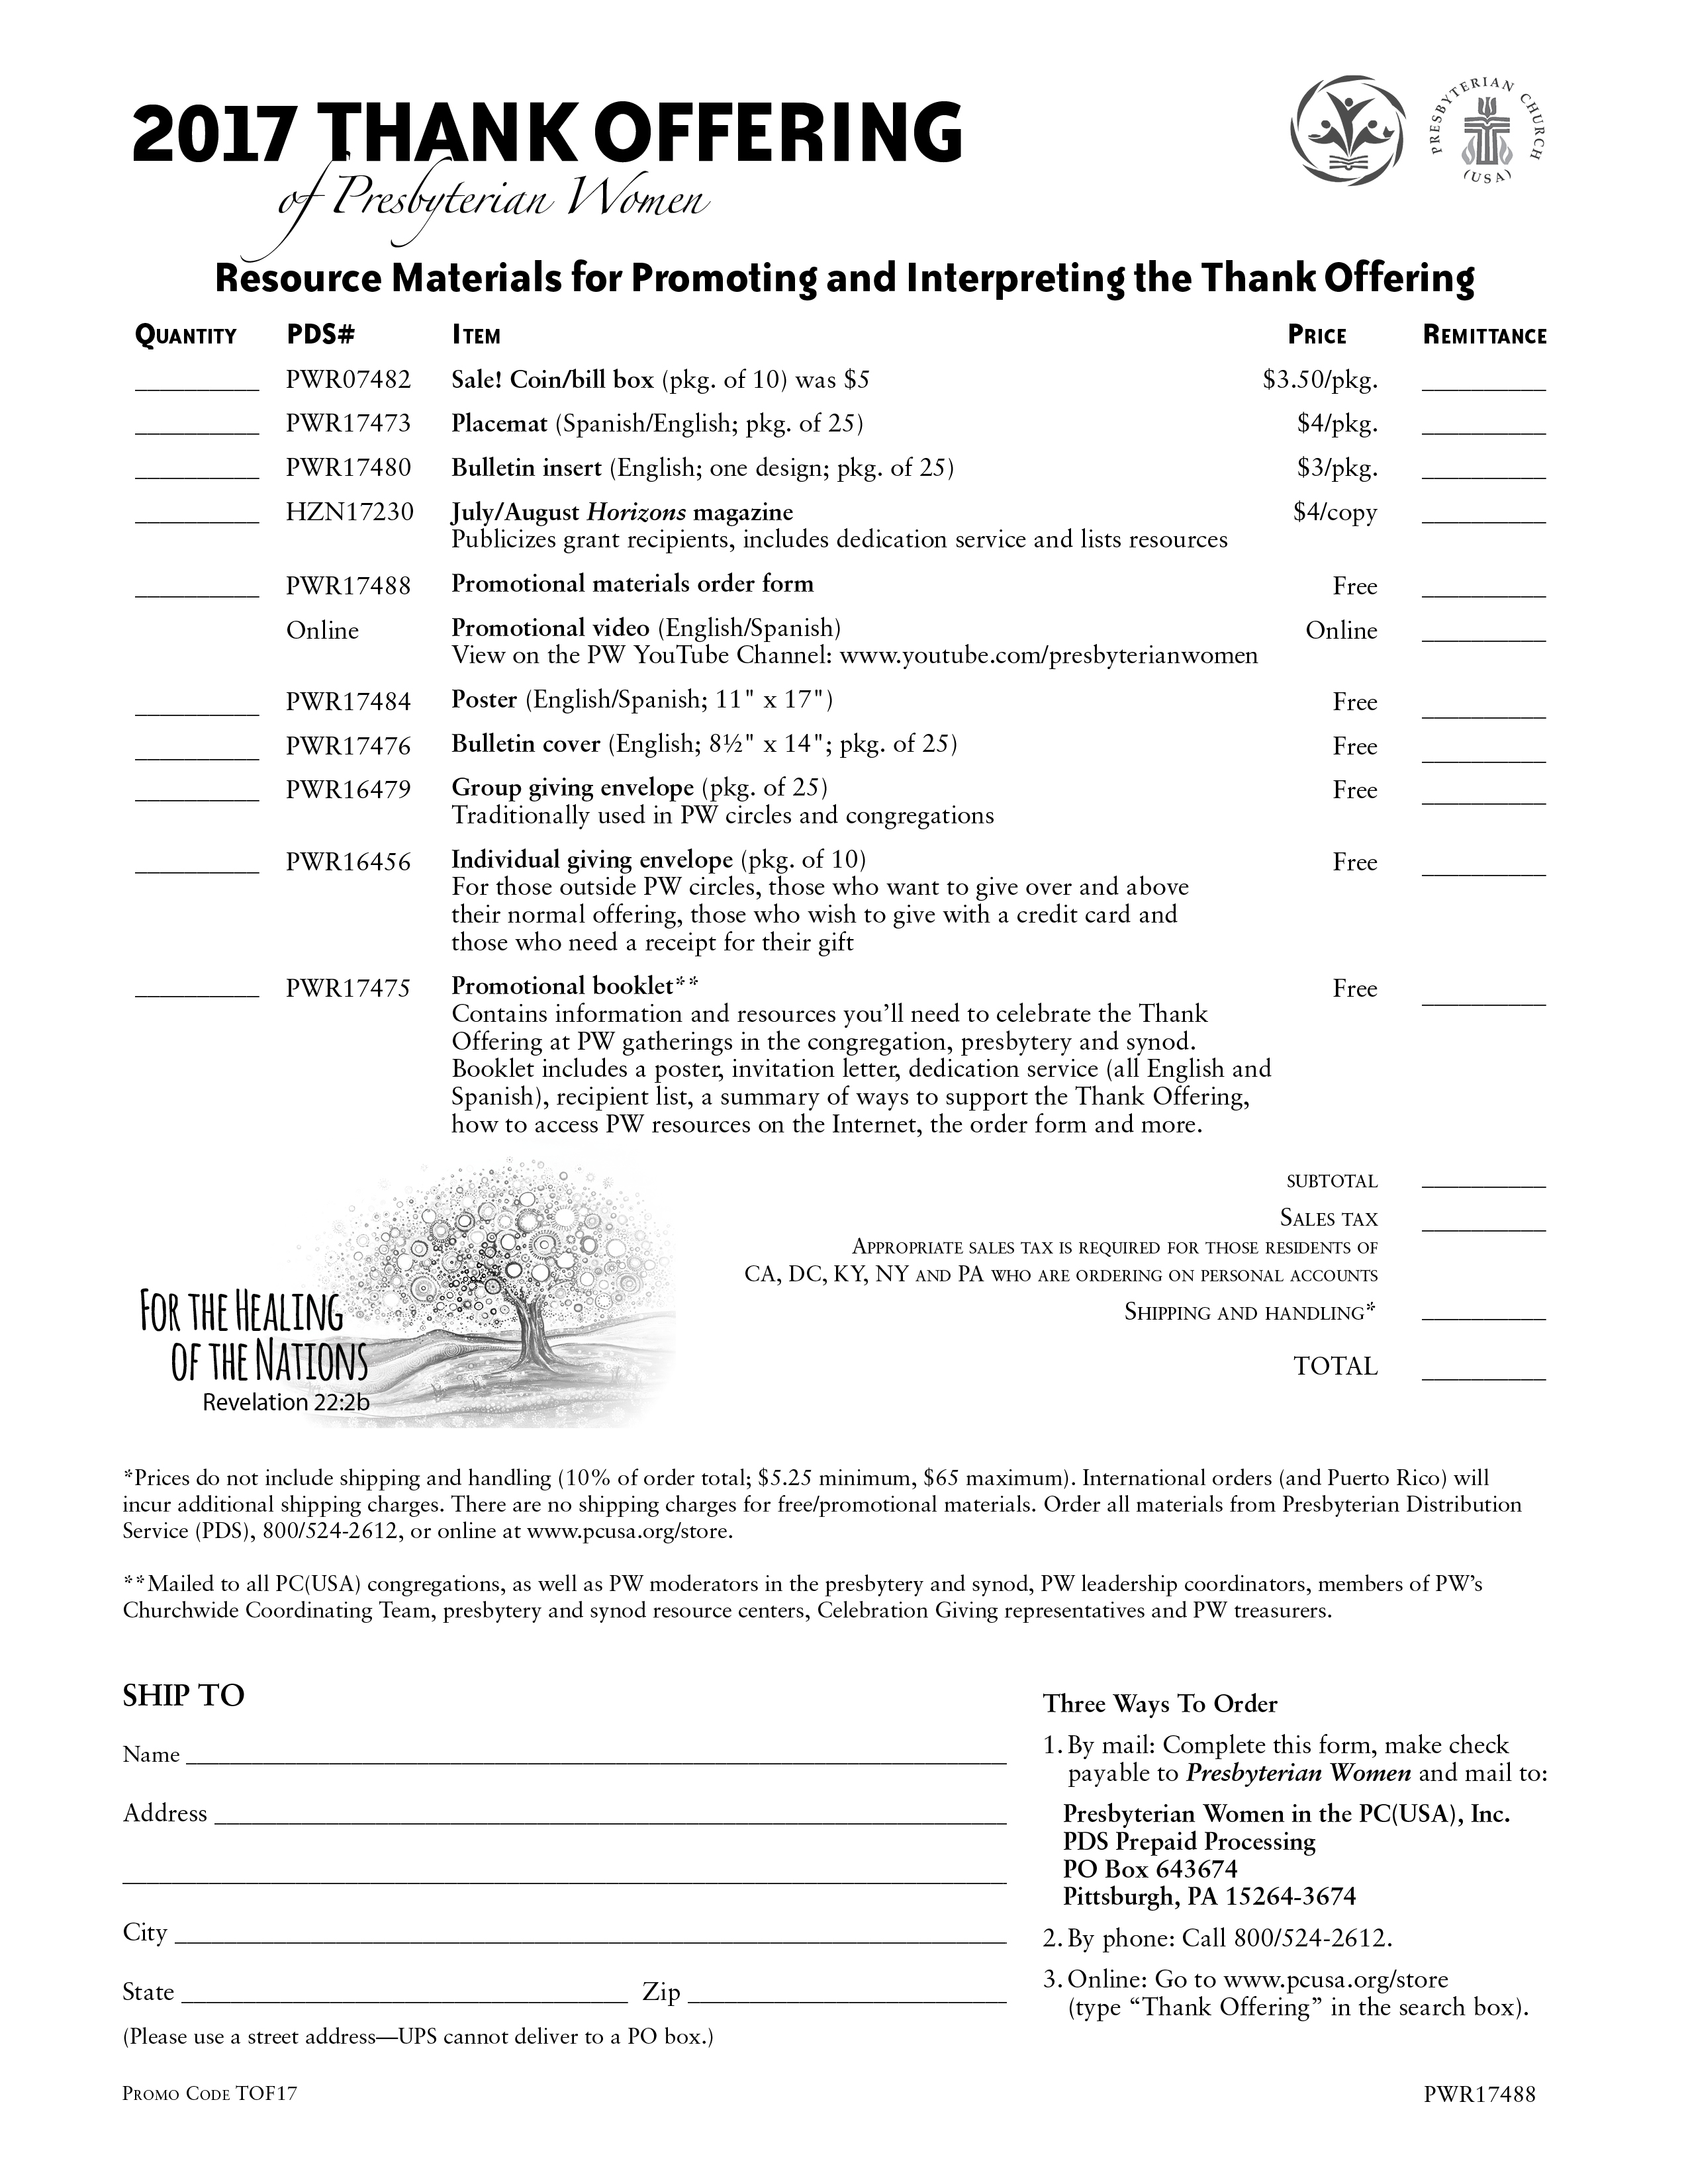 2017 Thank Offering Order Form